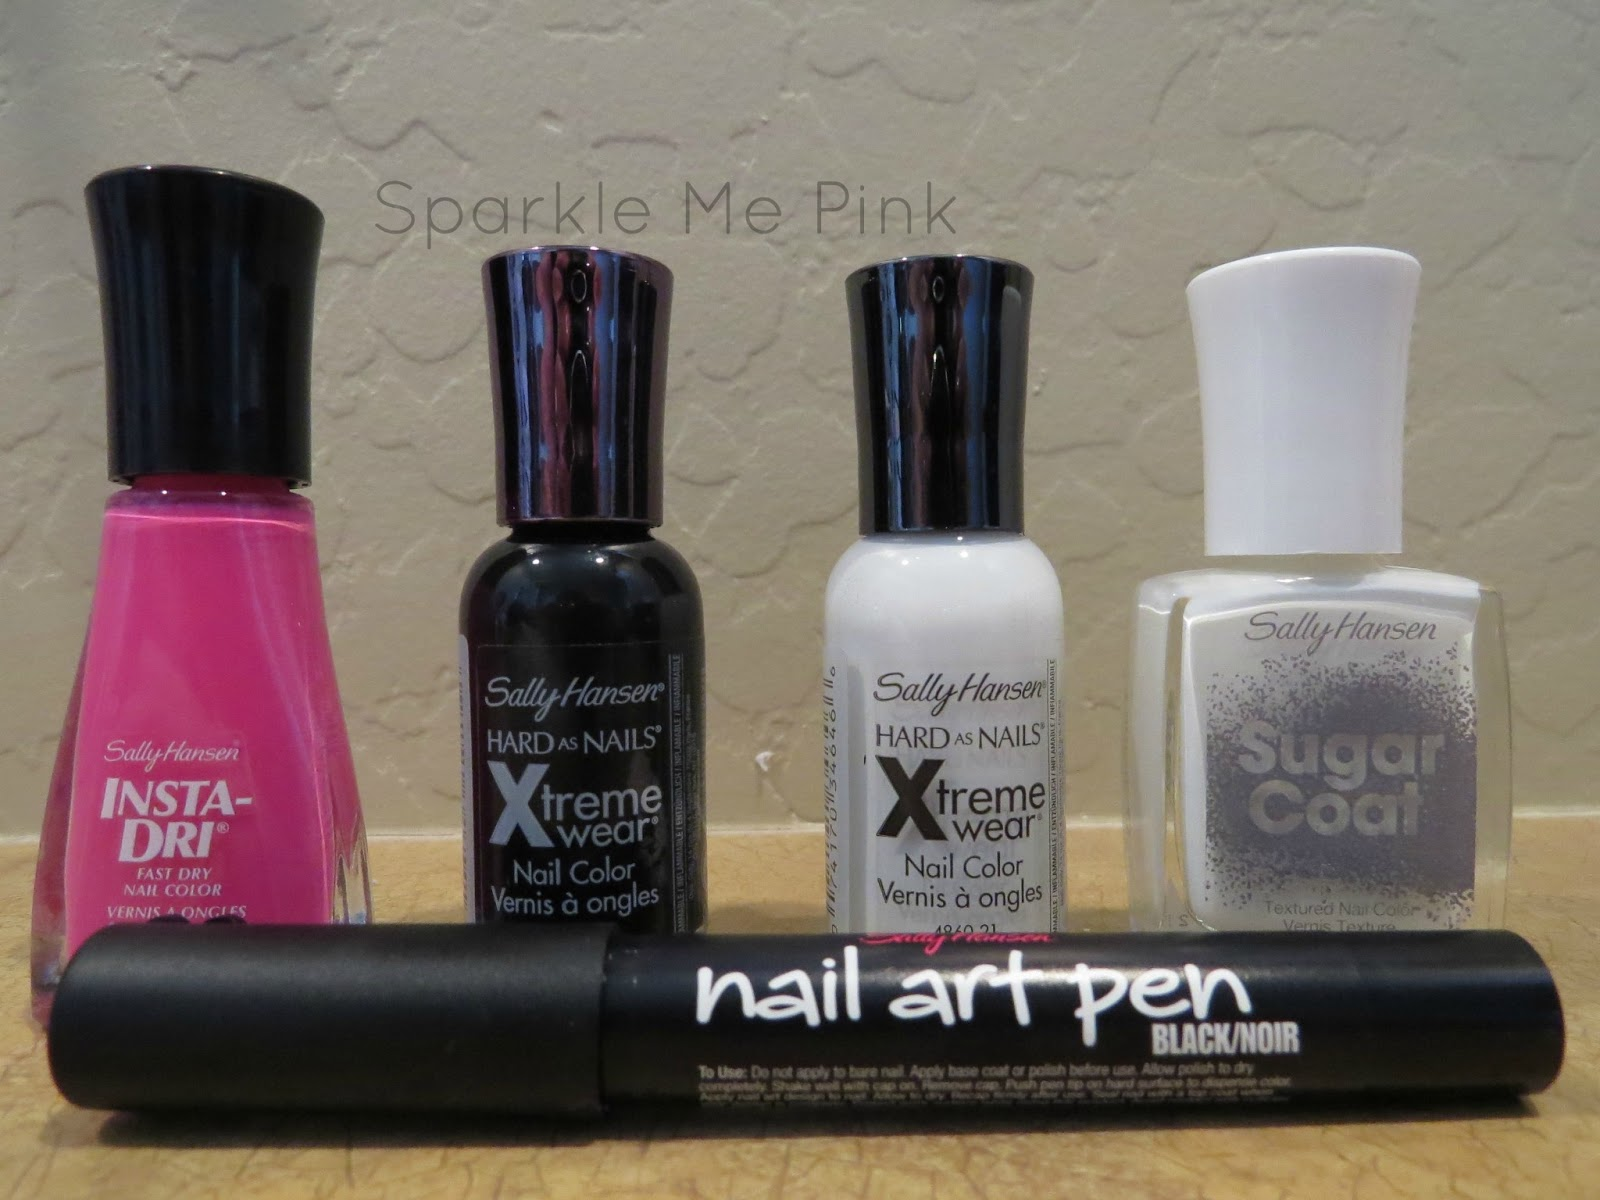 Sally Hansen Nail Art Pen Walgreens Crossfithpu